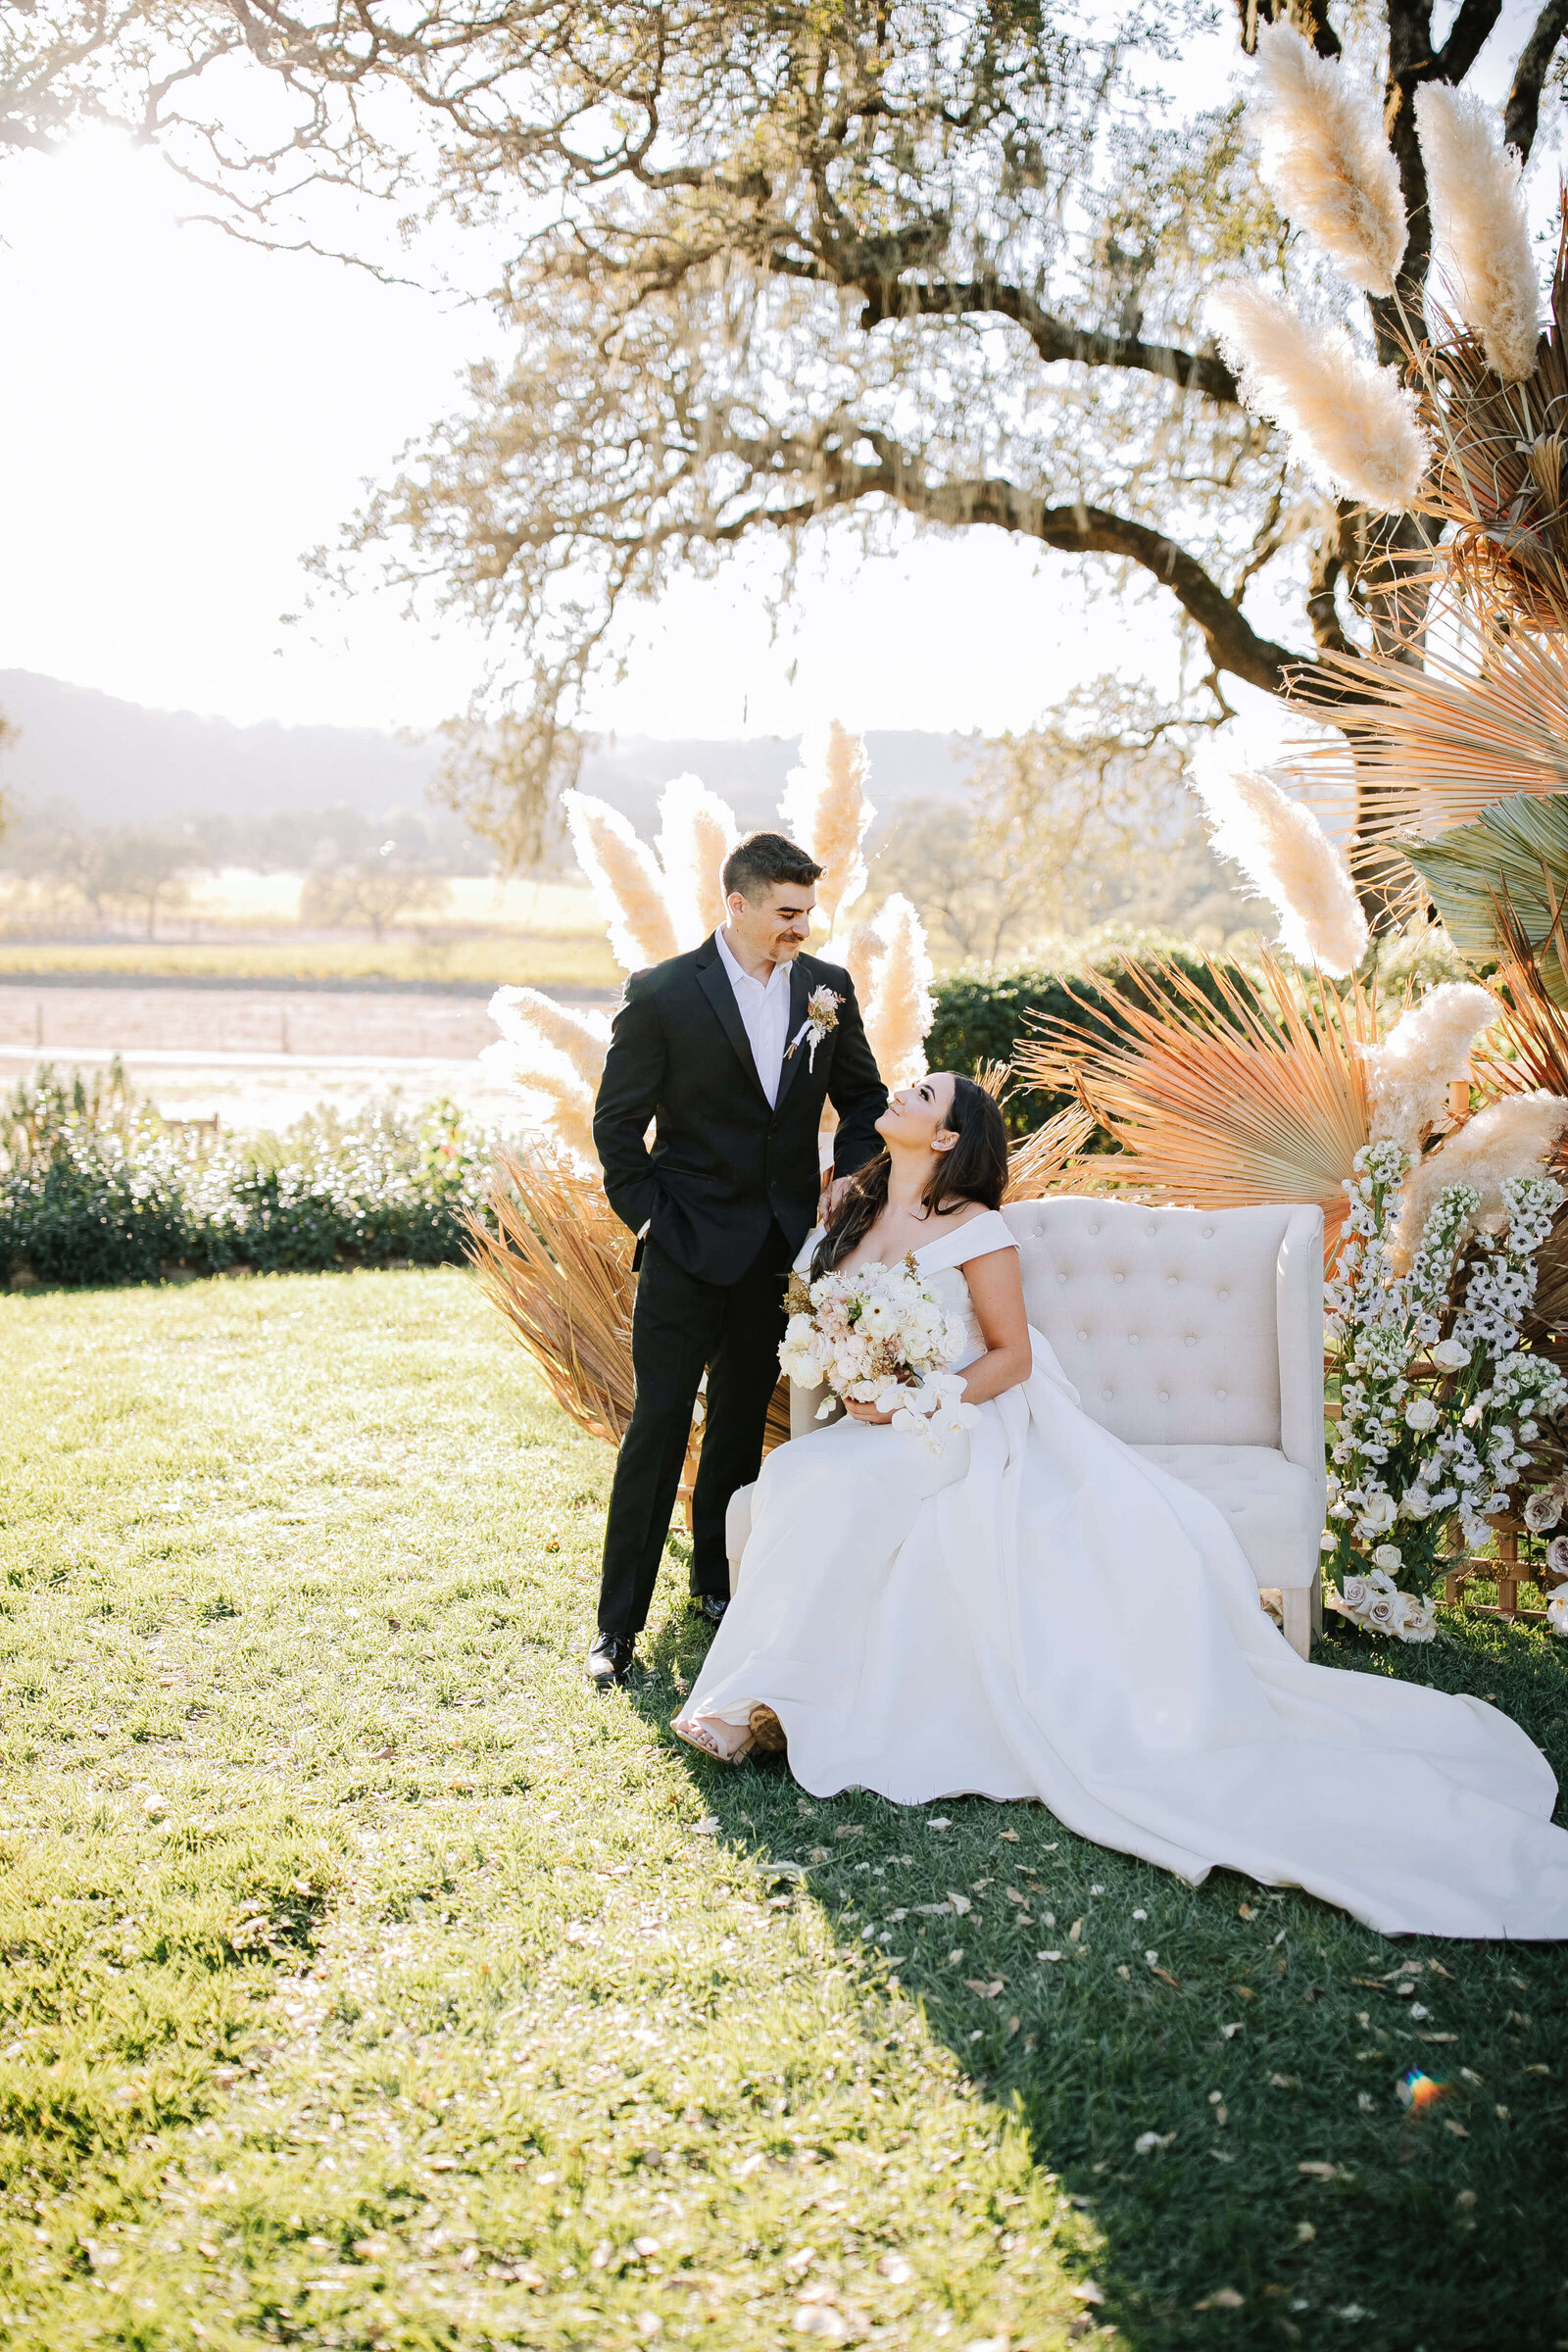 Sonoma-valley-beltane-ranch-california-wedding-events-by-gianna-somona-wedding-planner-2